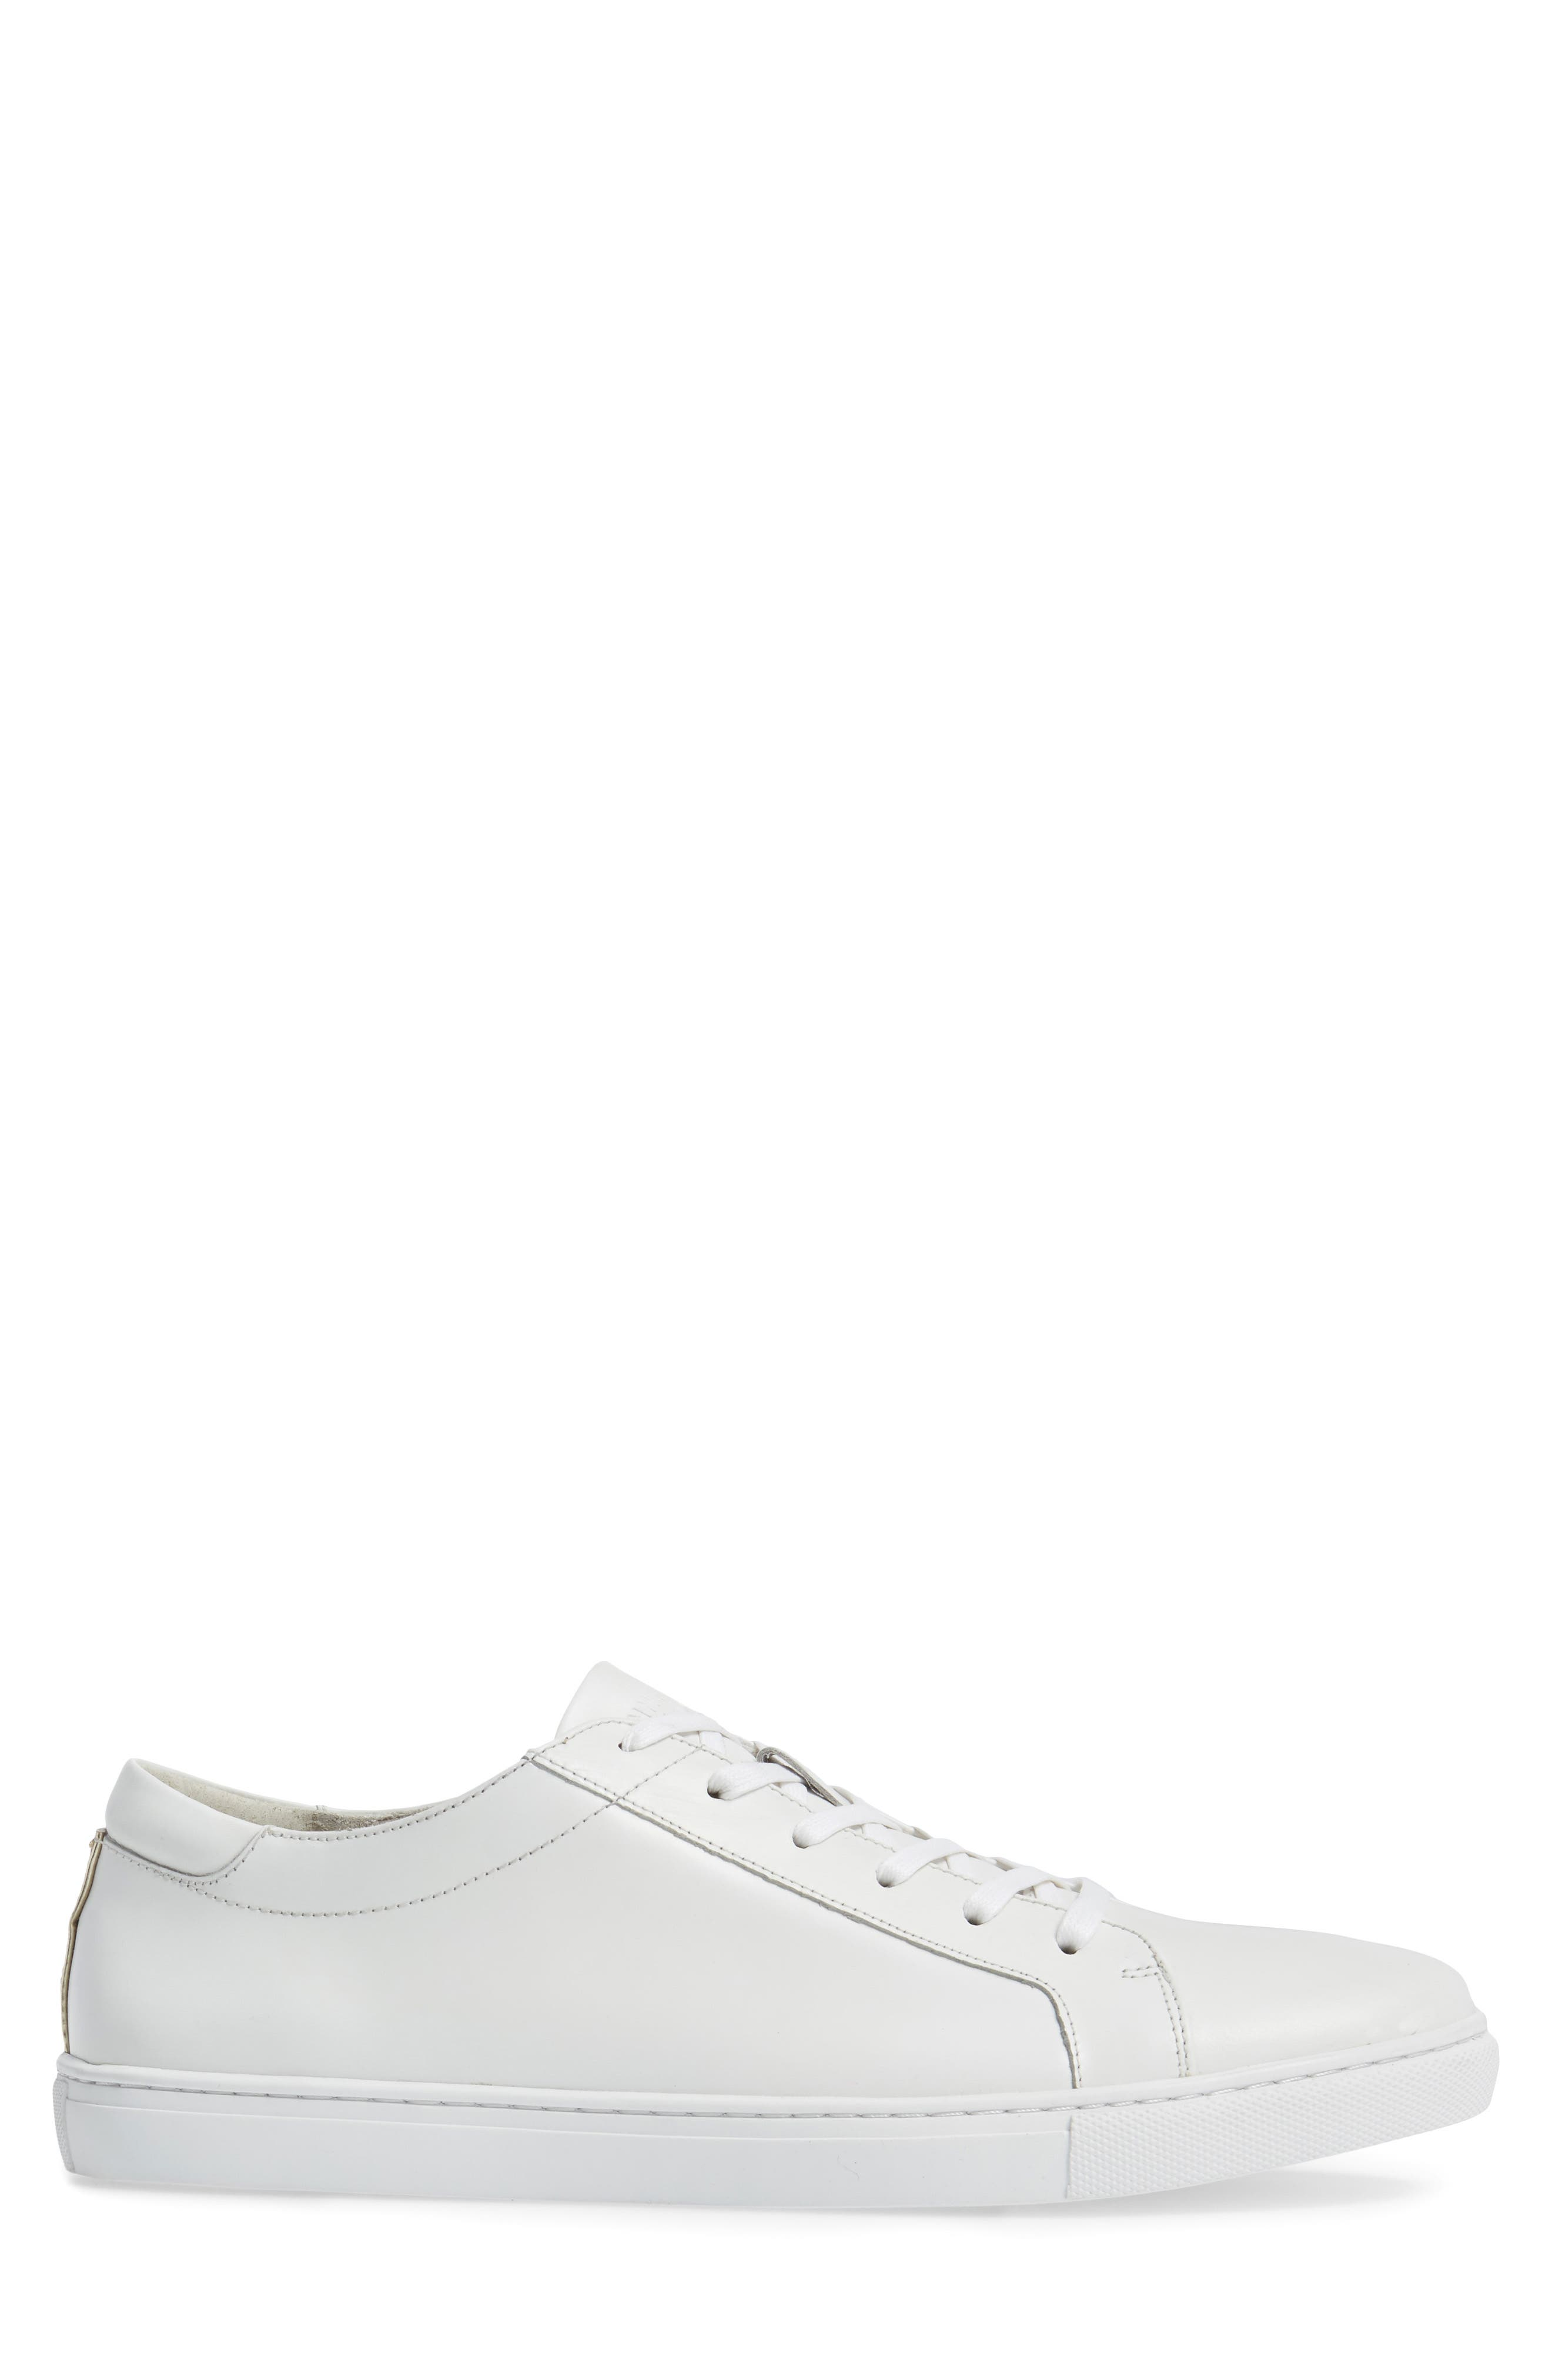 Alternate Image 3  - Kenneth Cole New York Kam Sneaker (Men)